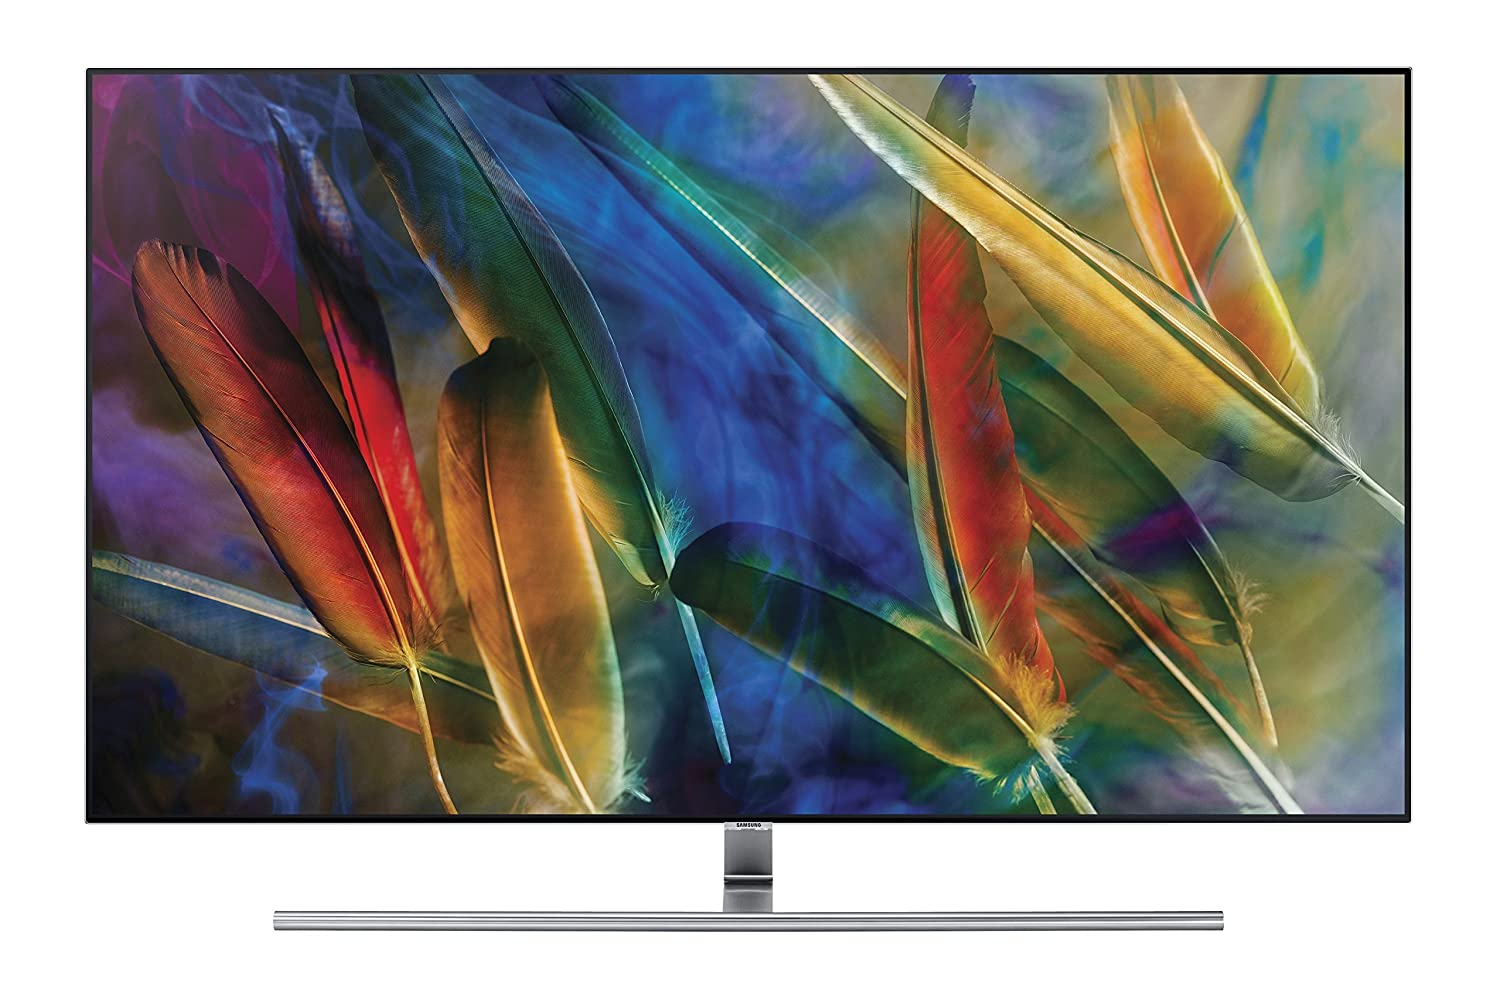 Samsung Q65Q7F 65 Inch Smart QLED TV